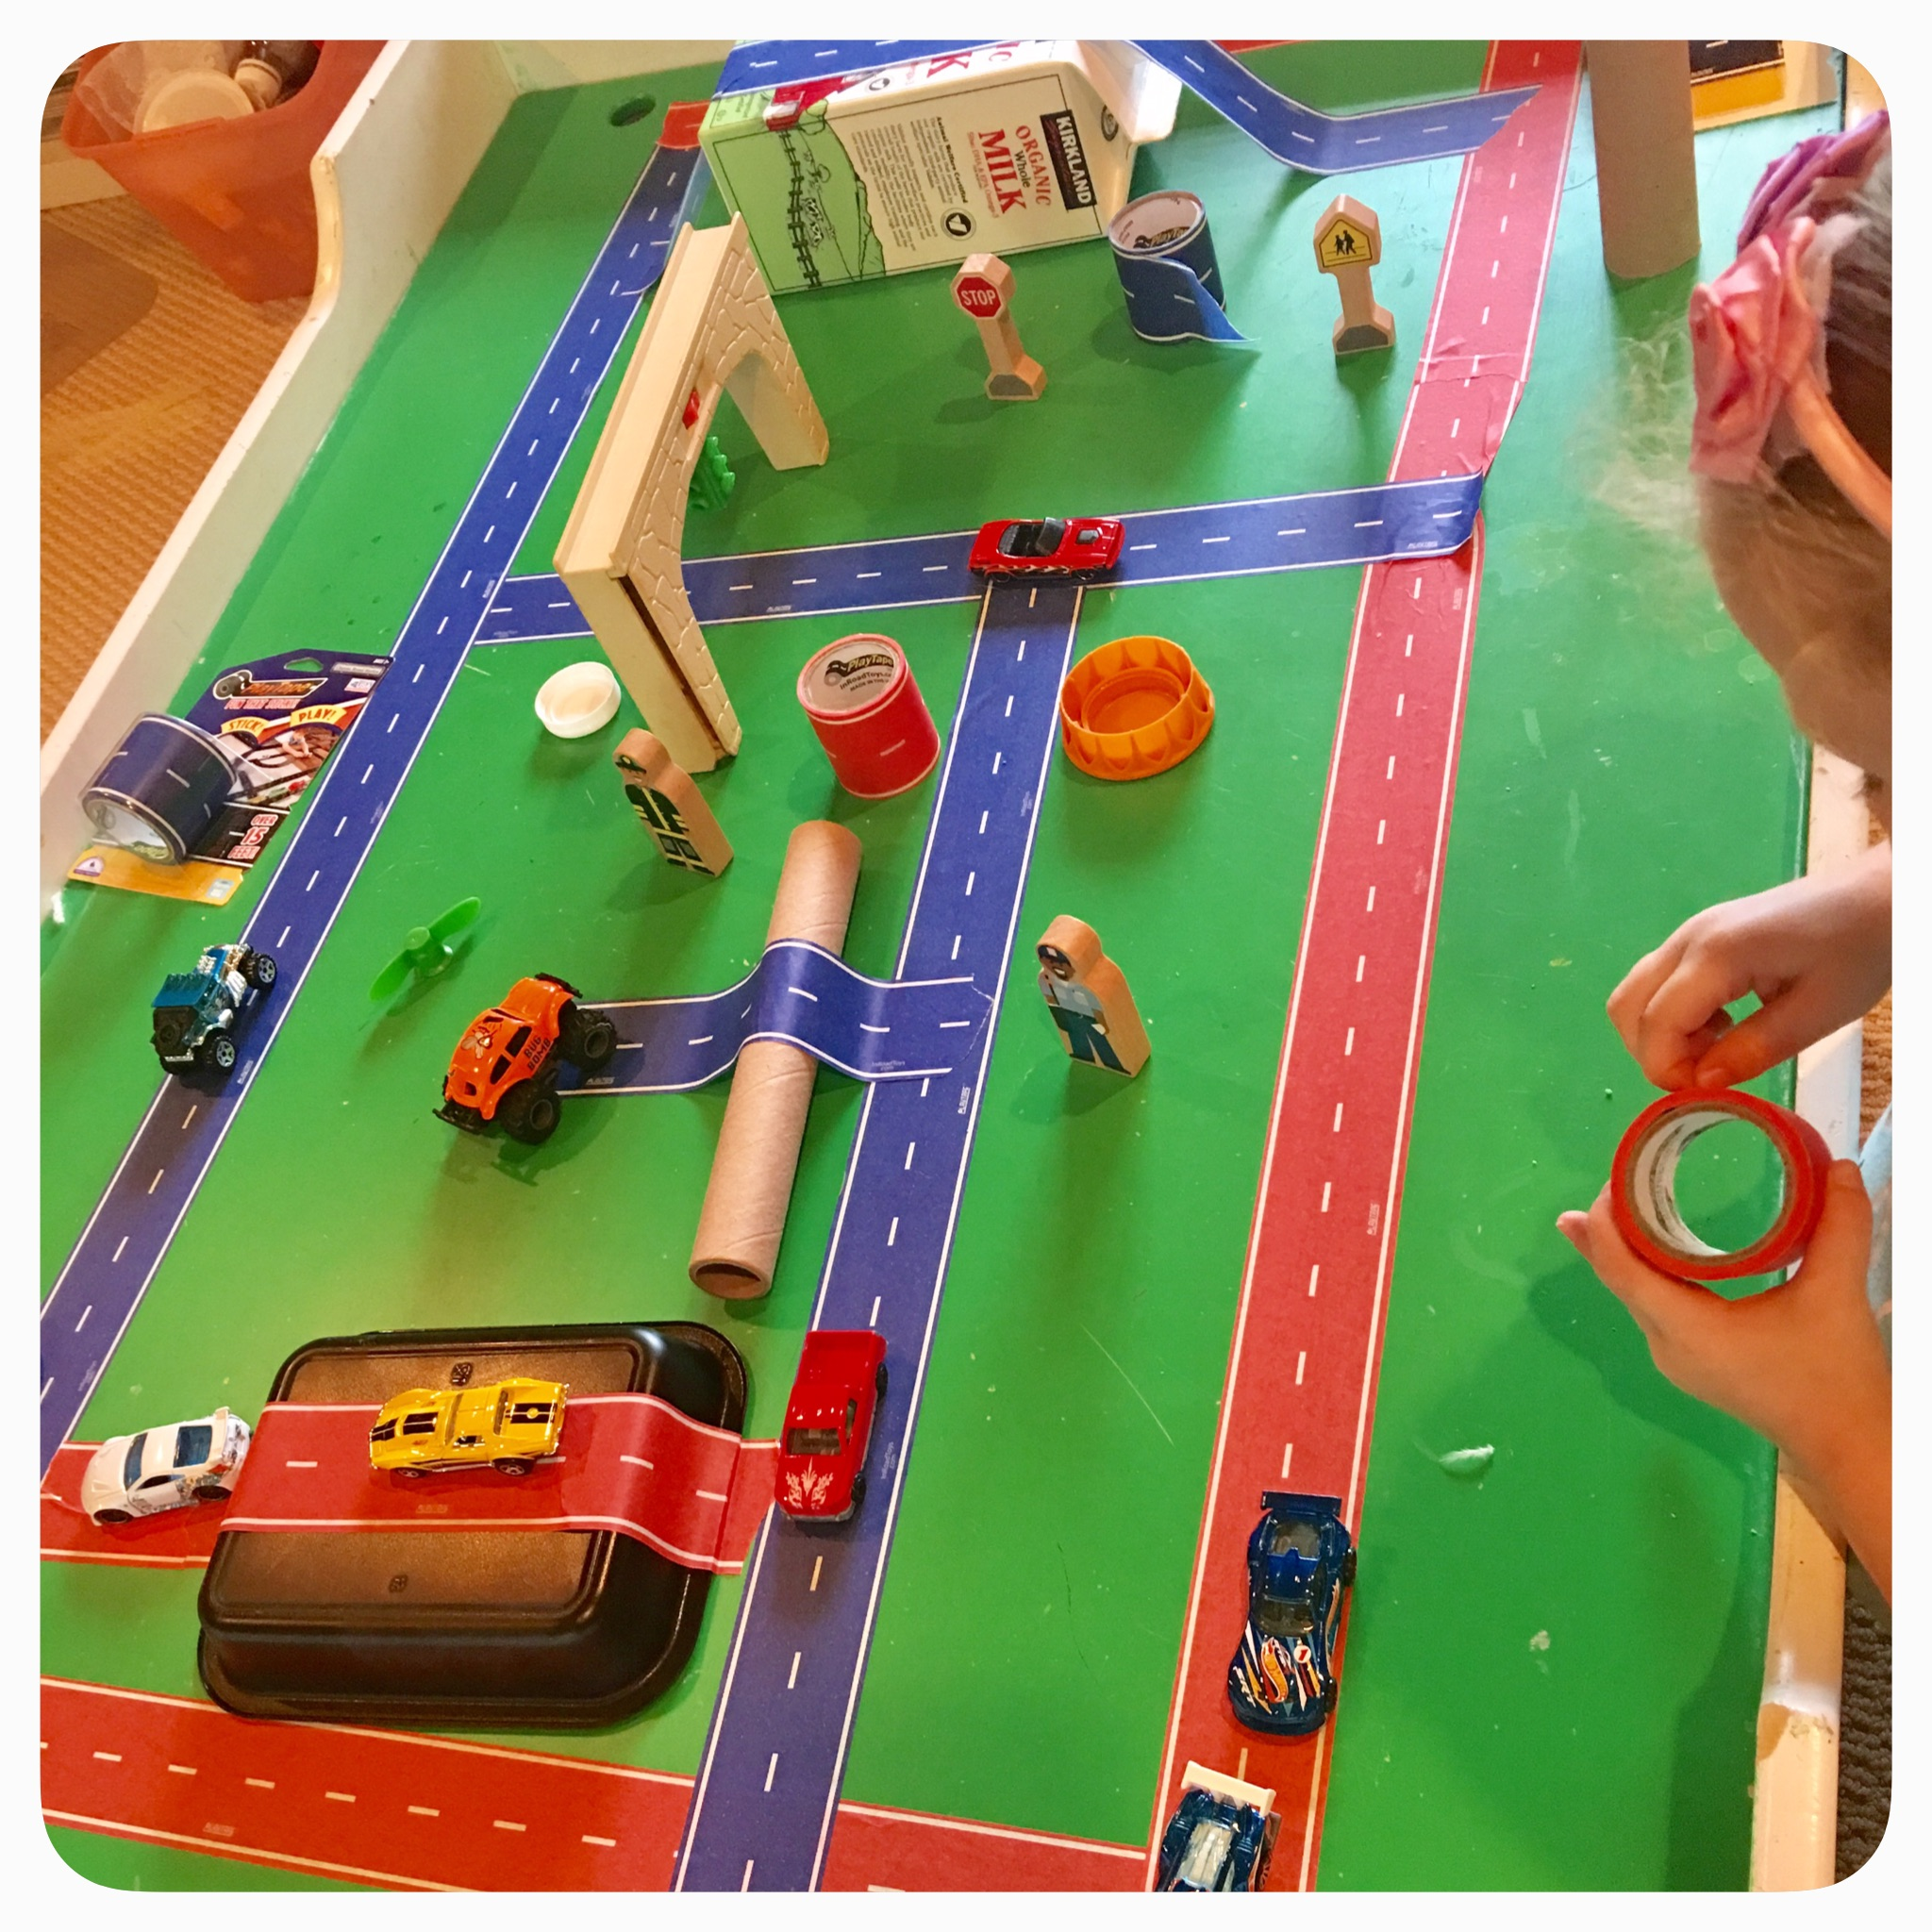 In Road Toys: great for letting kids express their our creativity and build a city exactly how they wish! This #playtape sticks but does not damage the surface at all and is super easy to pull off!